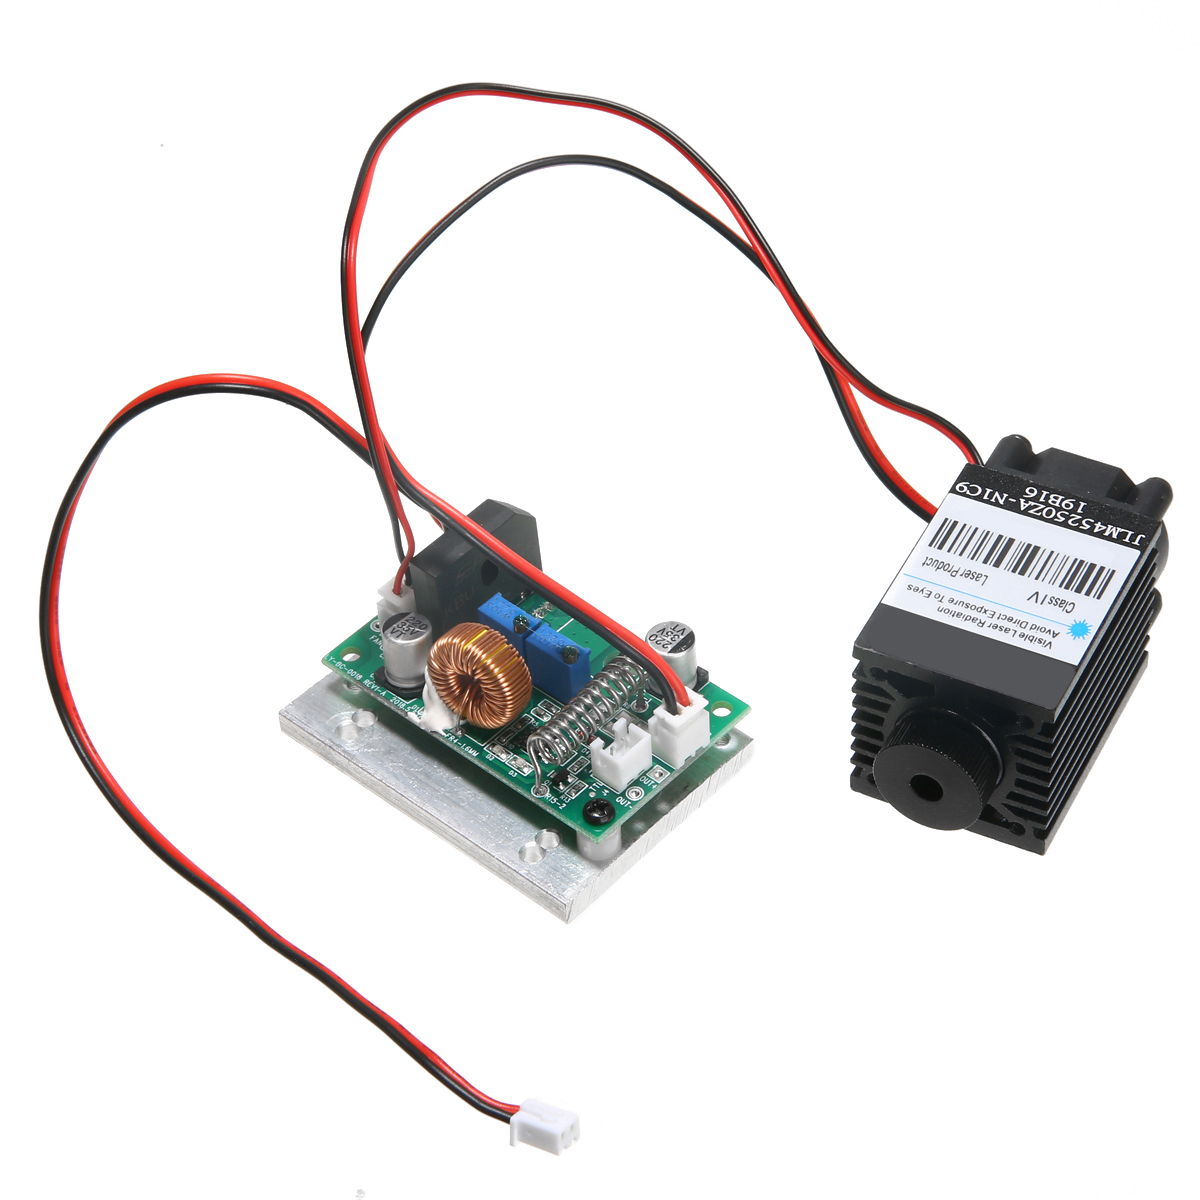 New Focusable 2.5W 2500mW 450nm 445nm Blue Laser Module TTL 12V DIY Engraving Durable Woodworking Machinery Parts